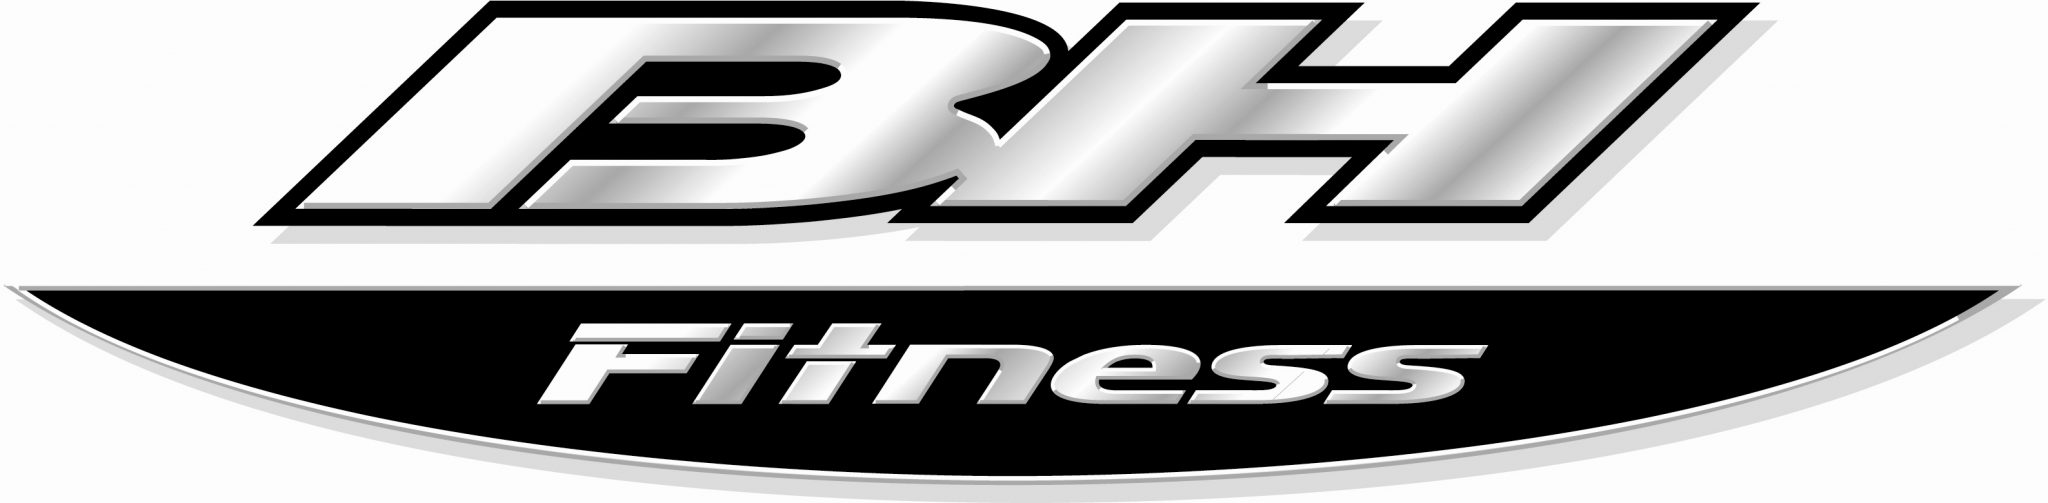 Bh Fitness Is A Company That Originally Started Out In Spain And It Was Elished By 2 Brothers Who Had Been Developing Steel Products The Name Stands